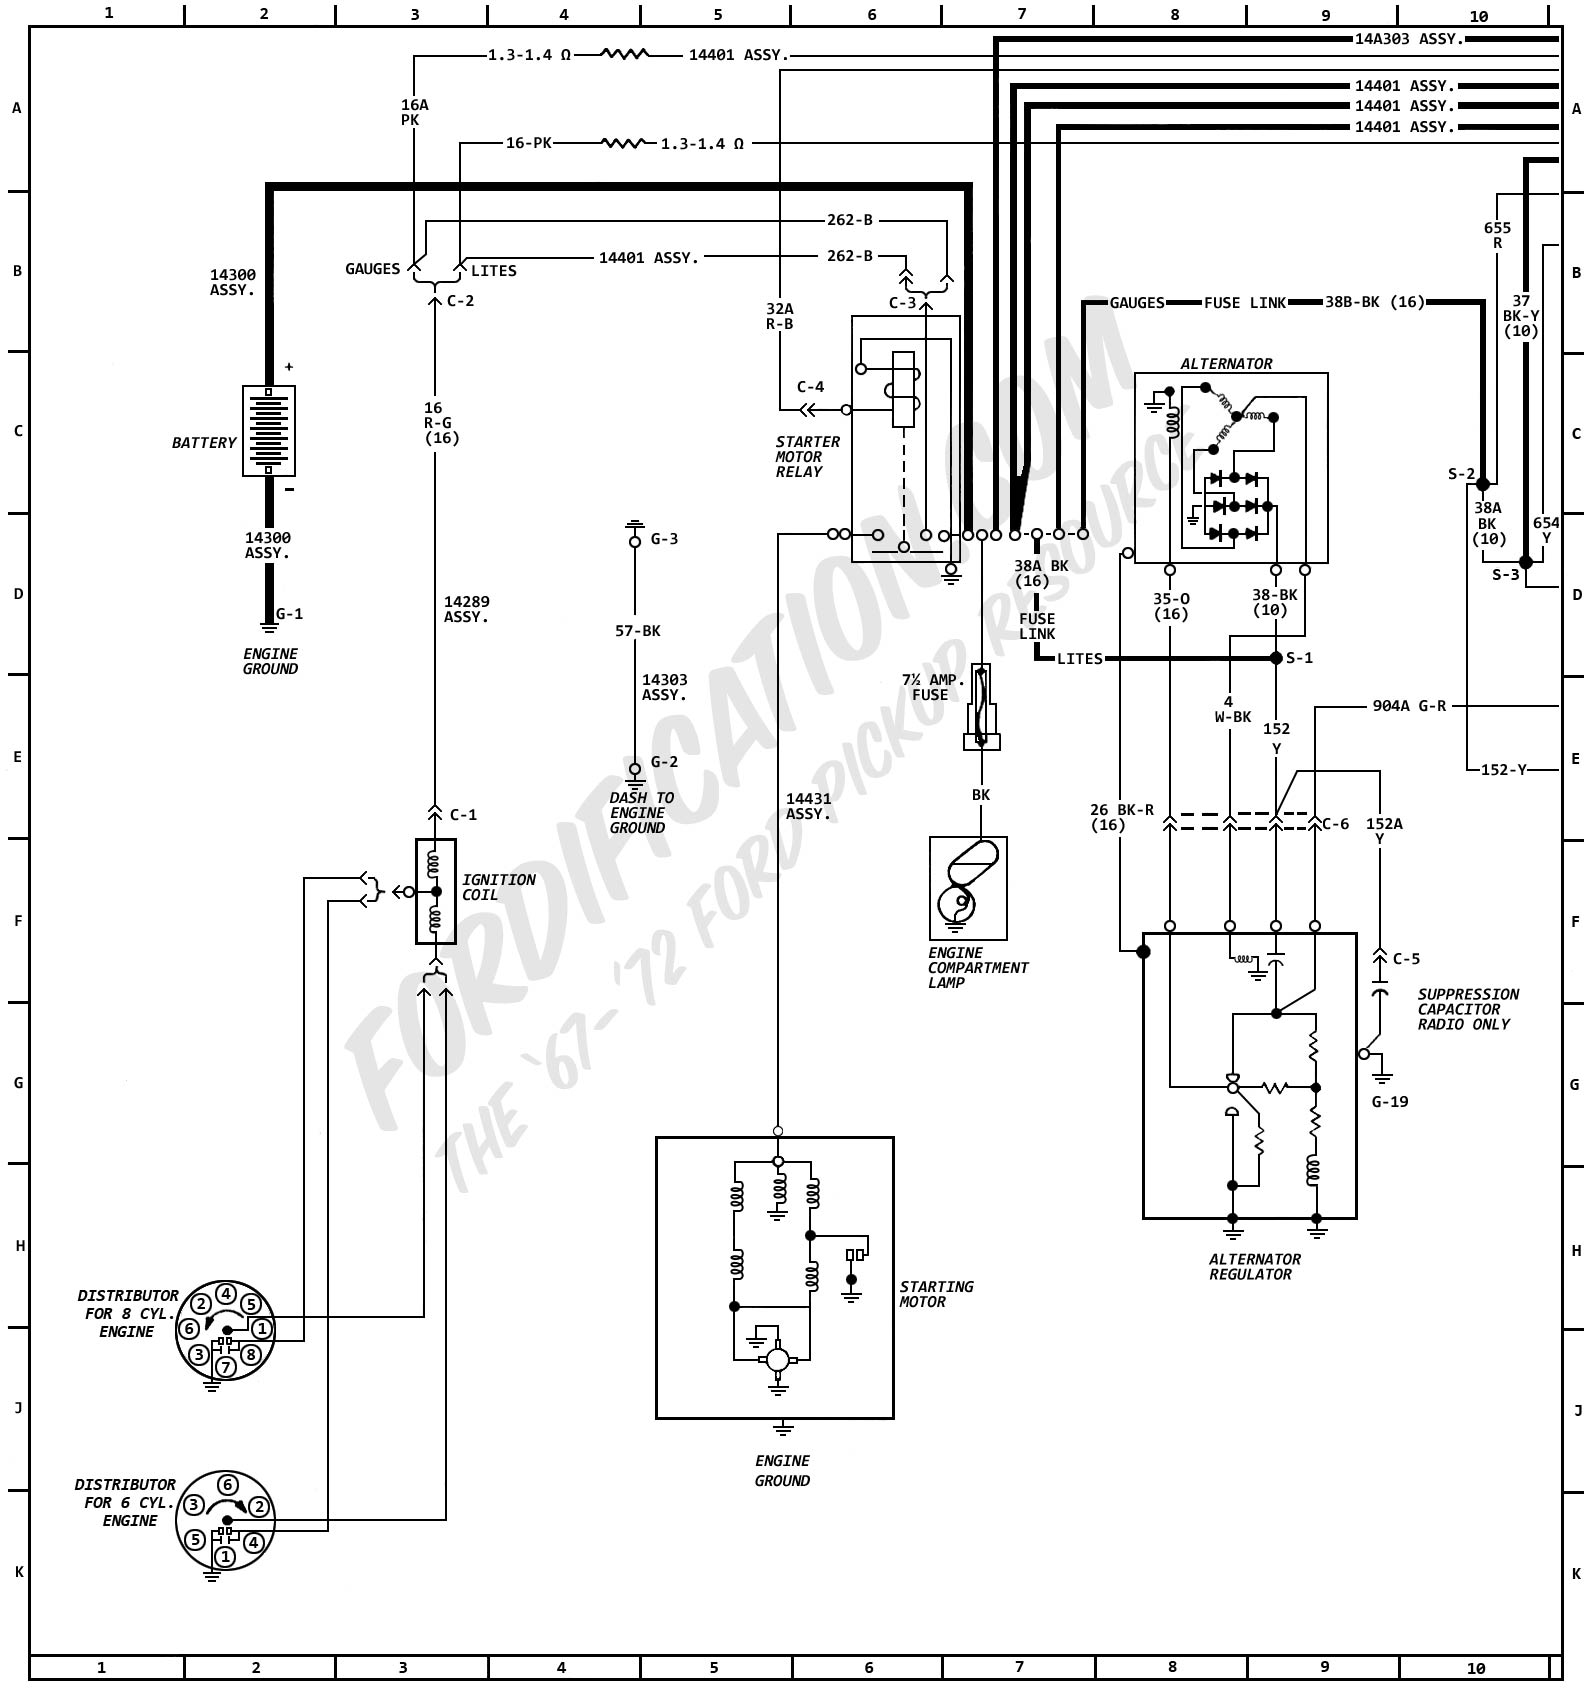 1972 chevy truck wiring harness diagram